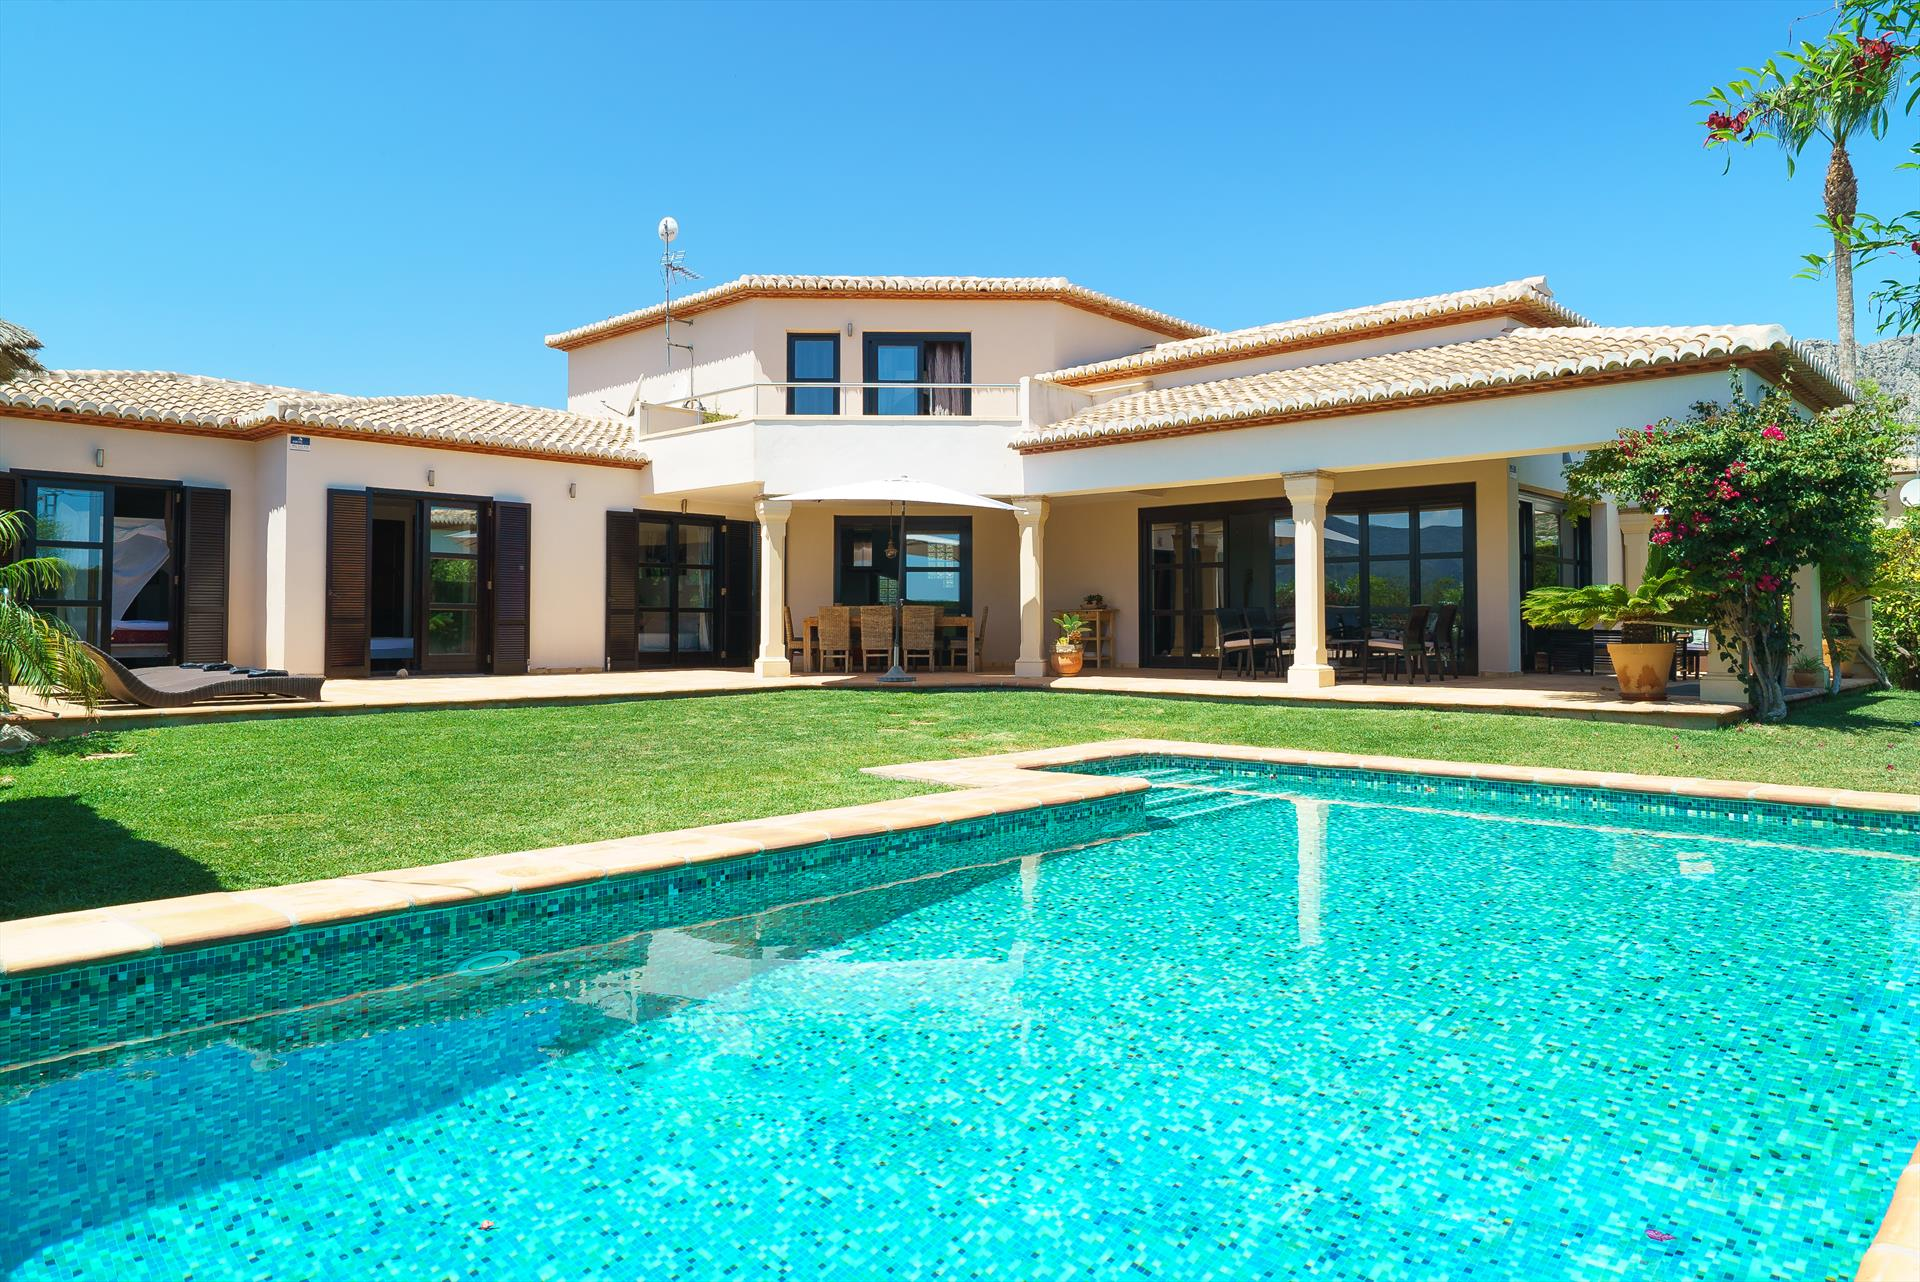 Daru dunya 6, Wonderful and comfortable luxury villa in Denia, on the Costa Blanca, Spain  with private pool for 6 persons.....